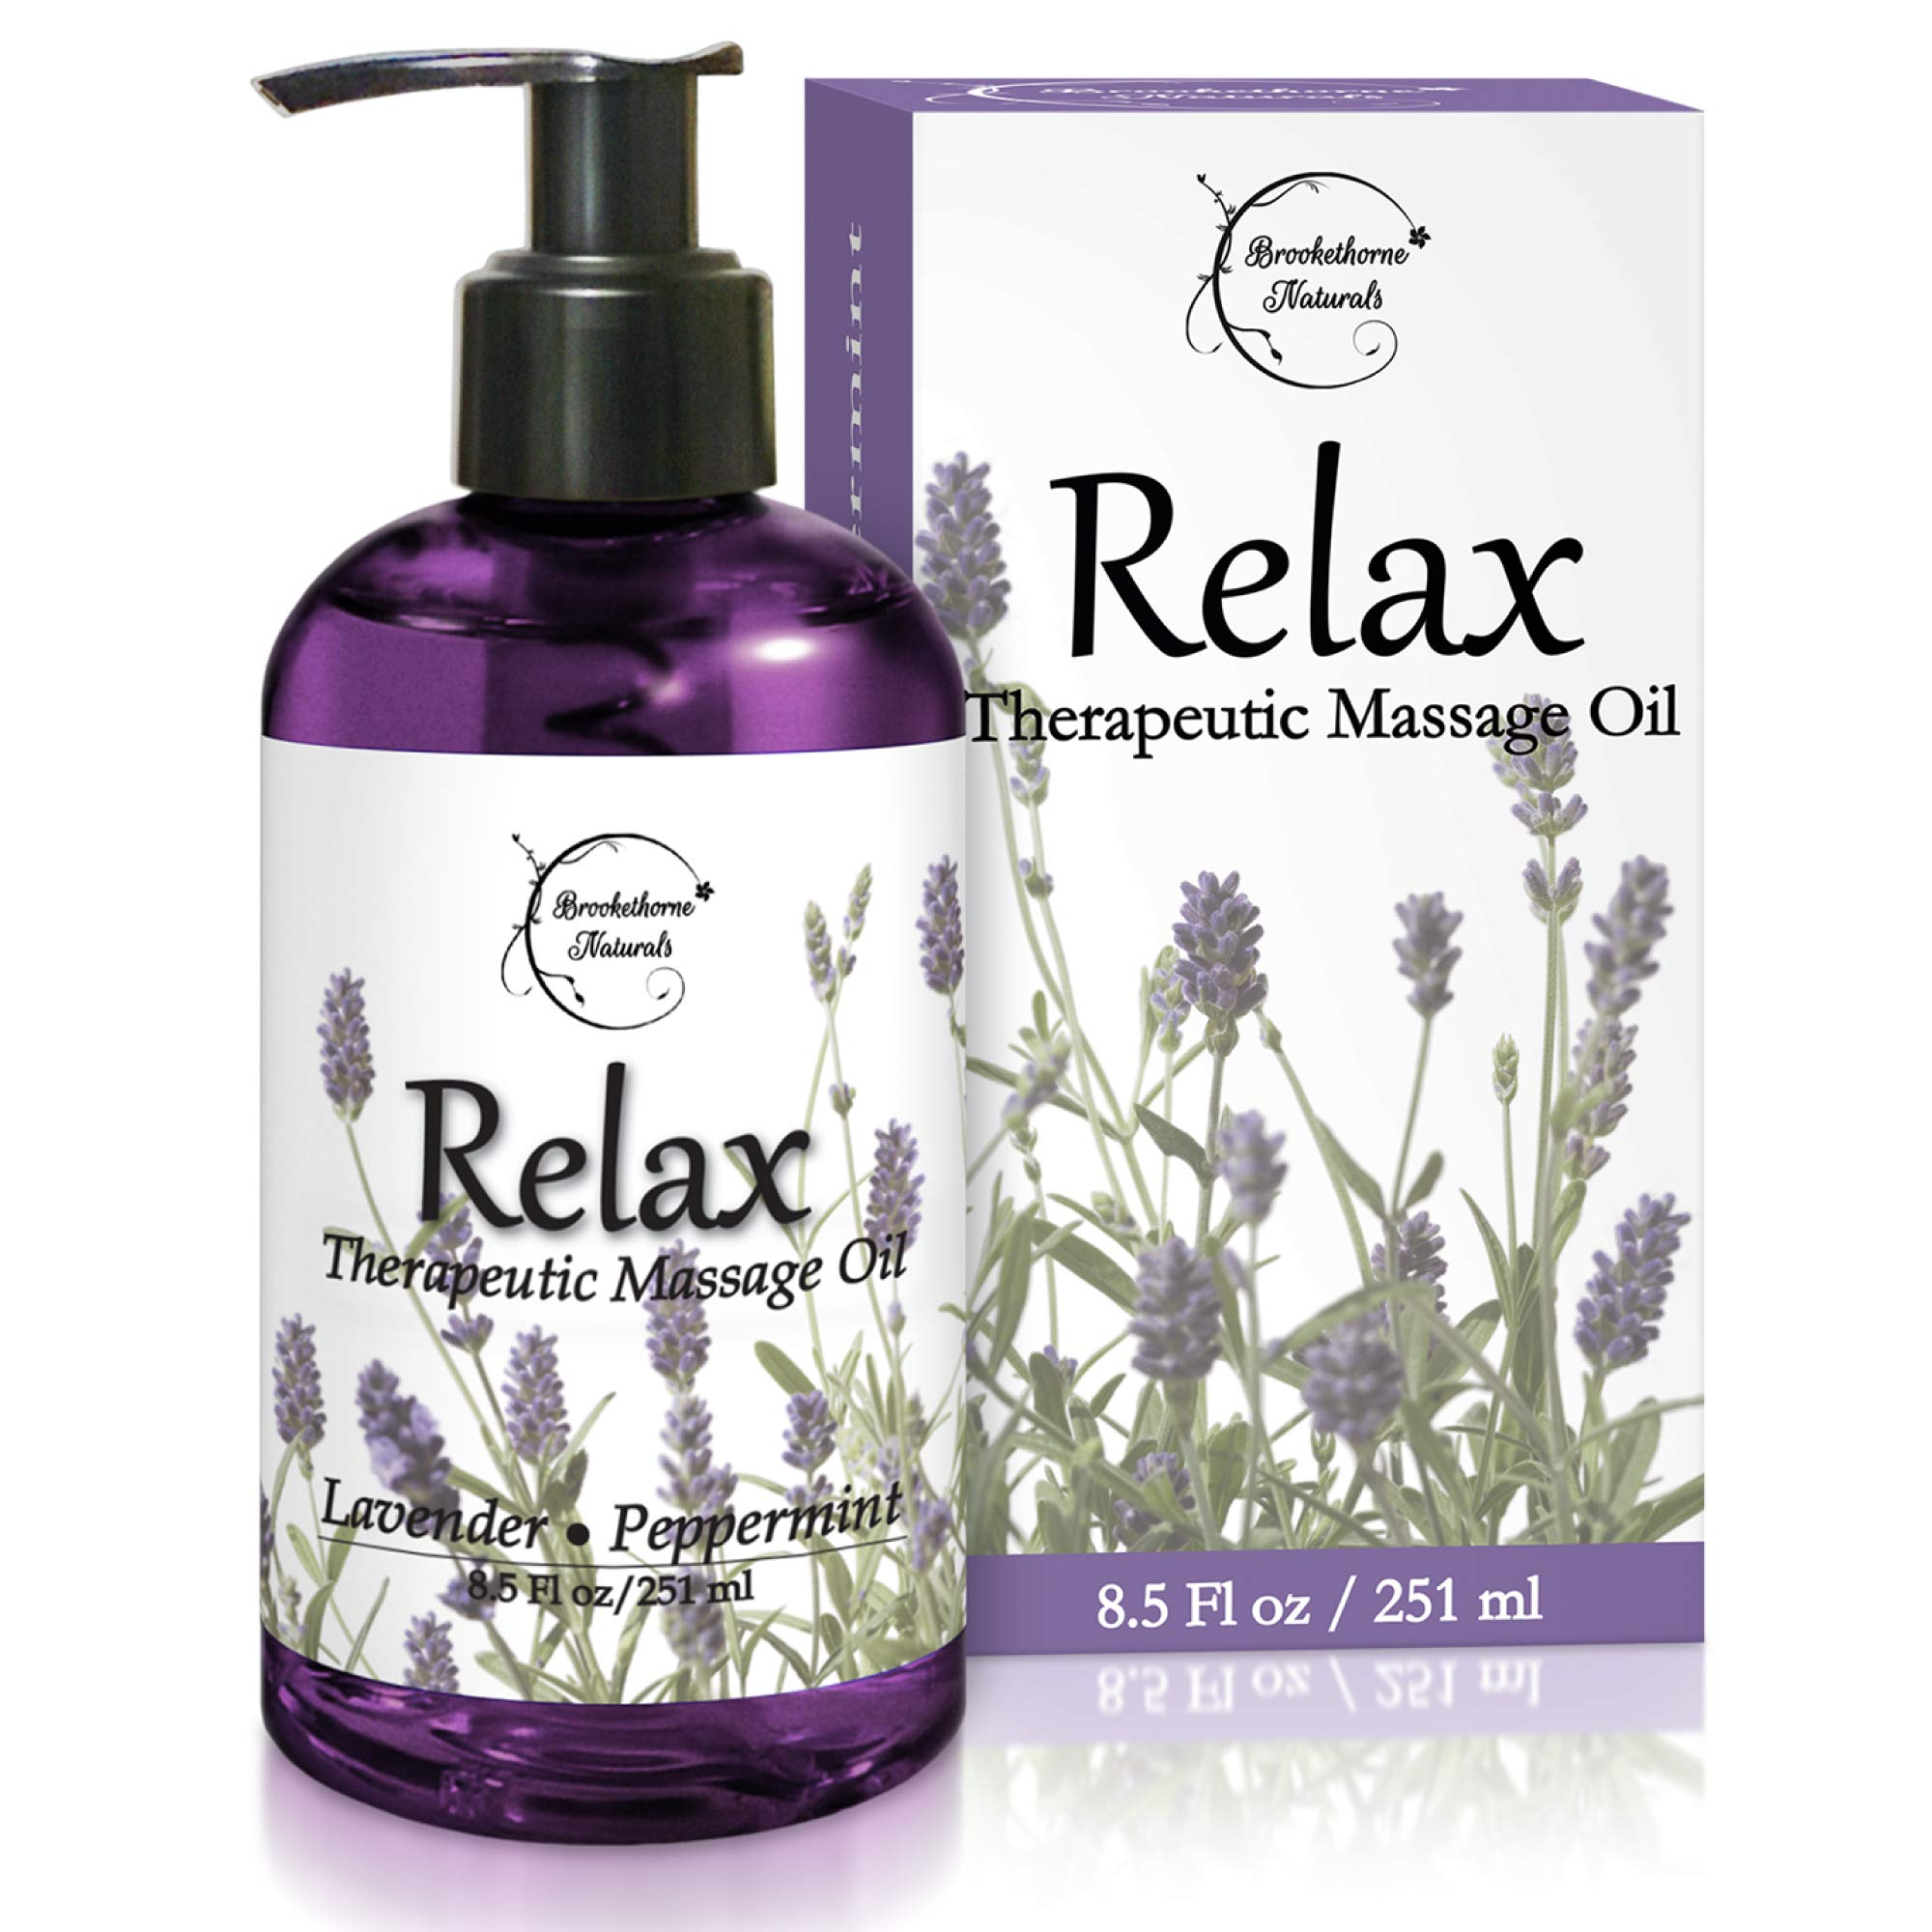 Relax Therapeutic Body Massage Oil - with Best Essential Oils for Sore Muscles & Stiffness - Lavender, Peppermint & Marjoram - All Natural - with Sweet Almond, Grapeseed & Jojoba Oil 8.5oz by Brookethorne Naturals